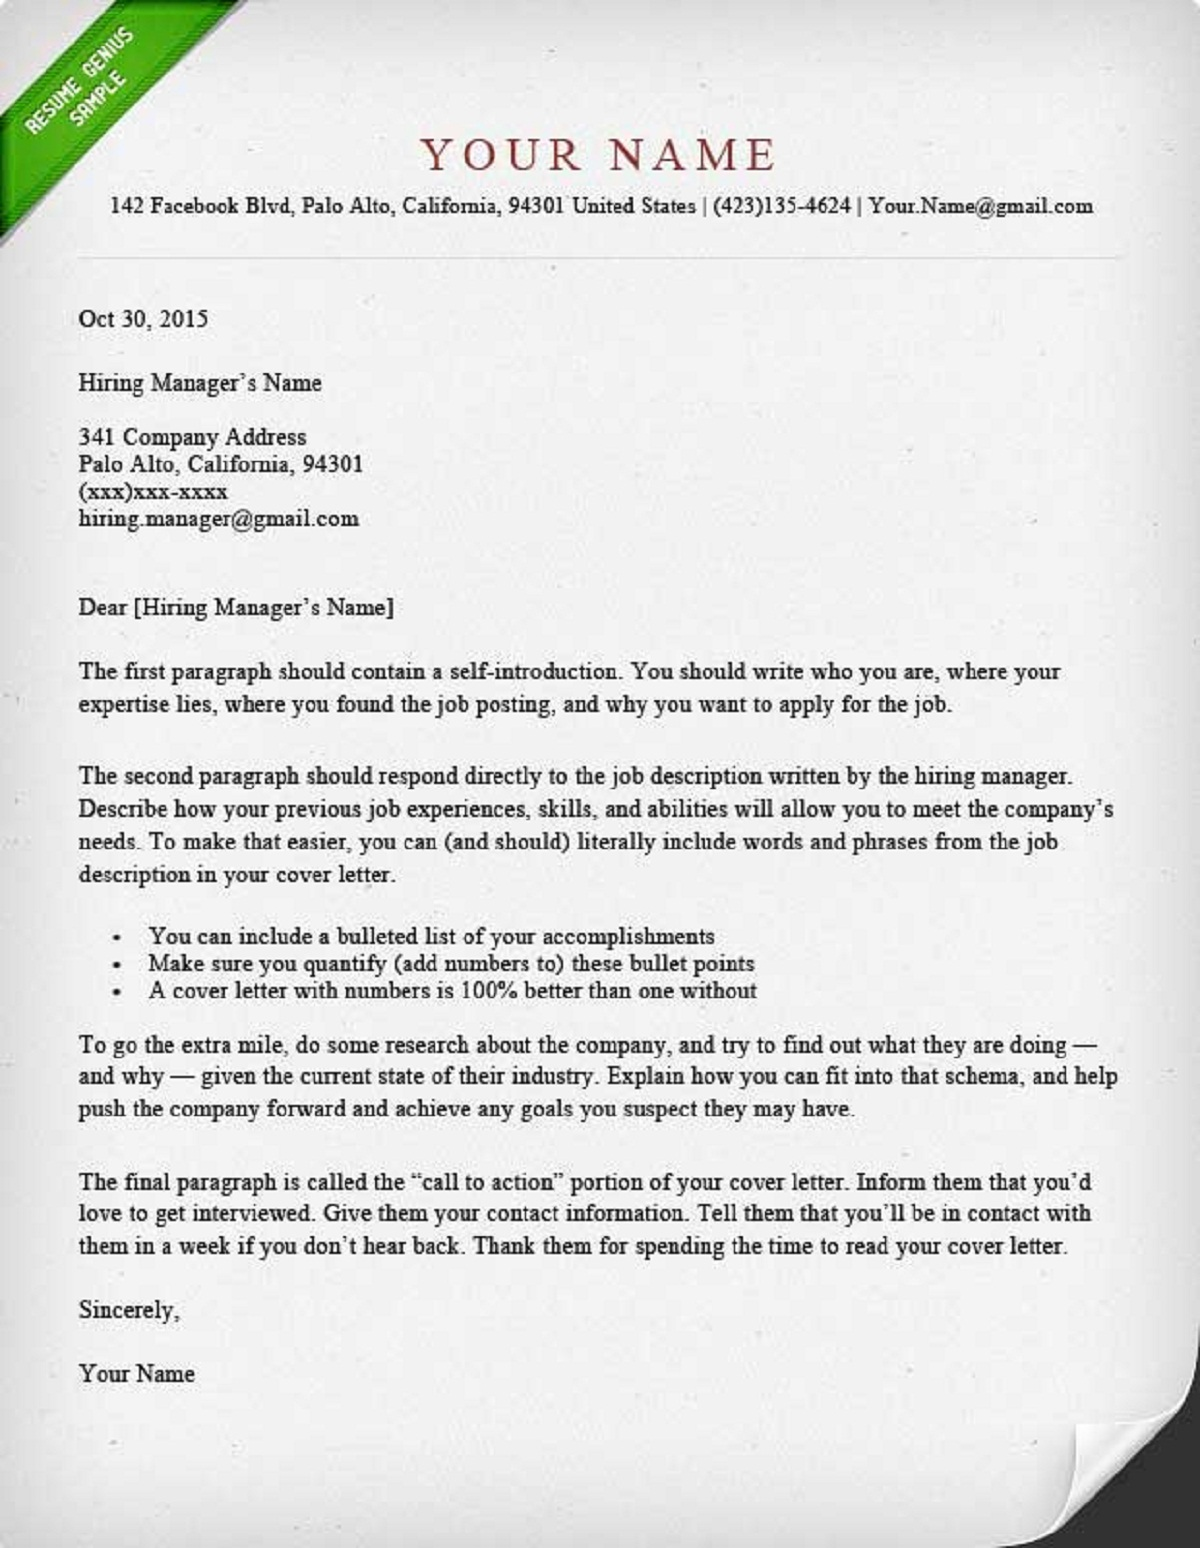 How to write a cover letter guide with sample how can done for How to write covering letter with cv